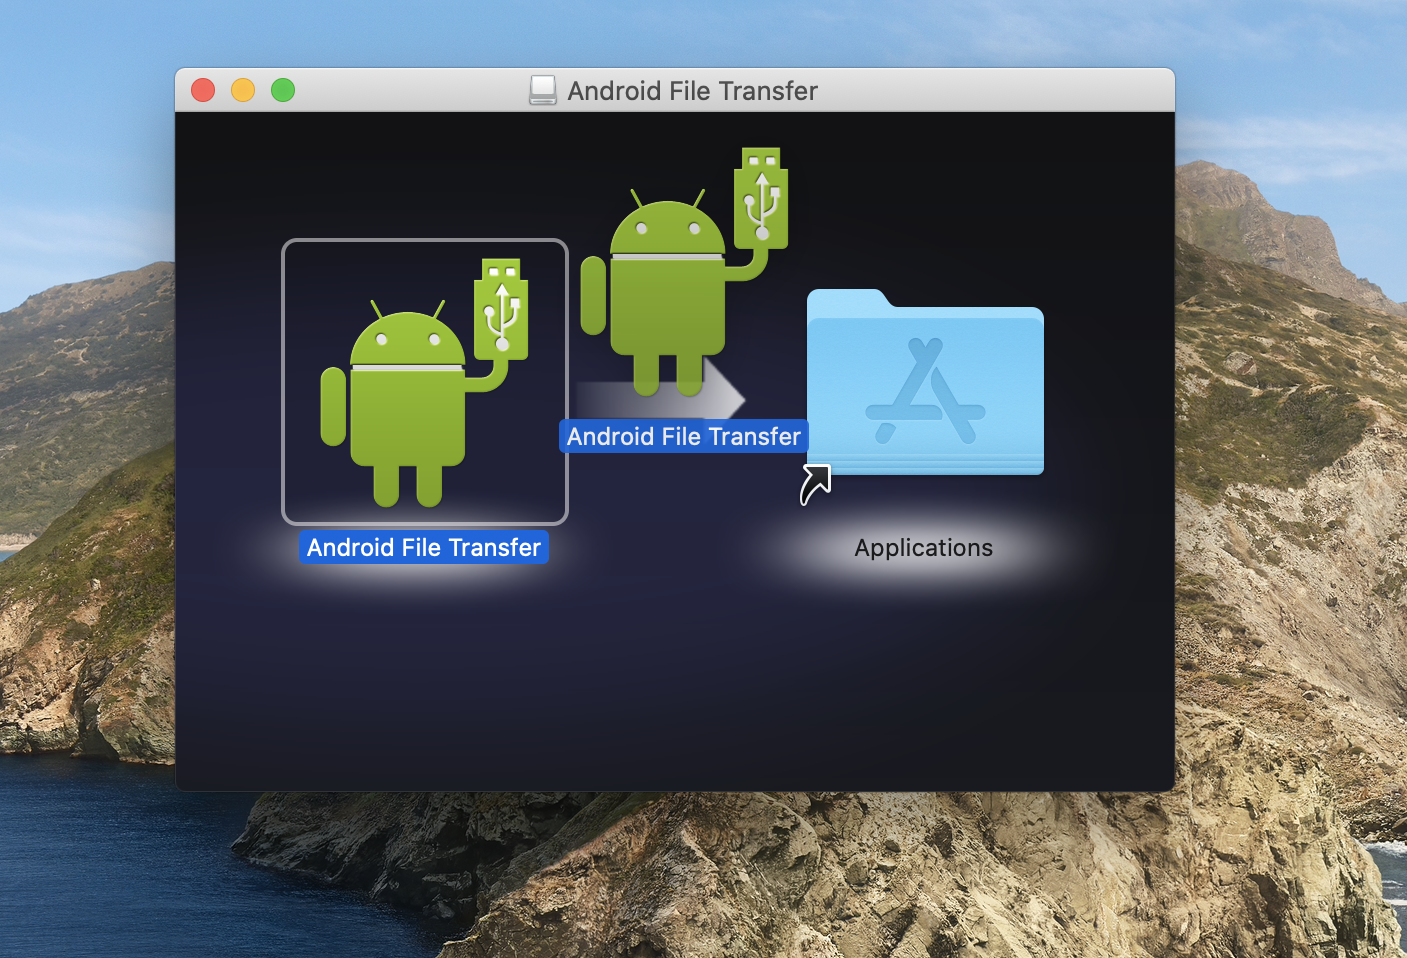 Android File Transfer for Mac - How to Transfer Android Files to Mac